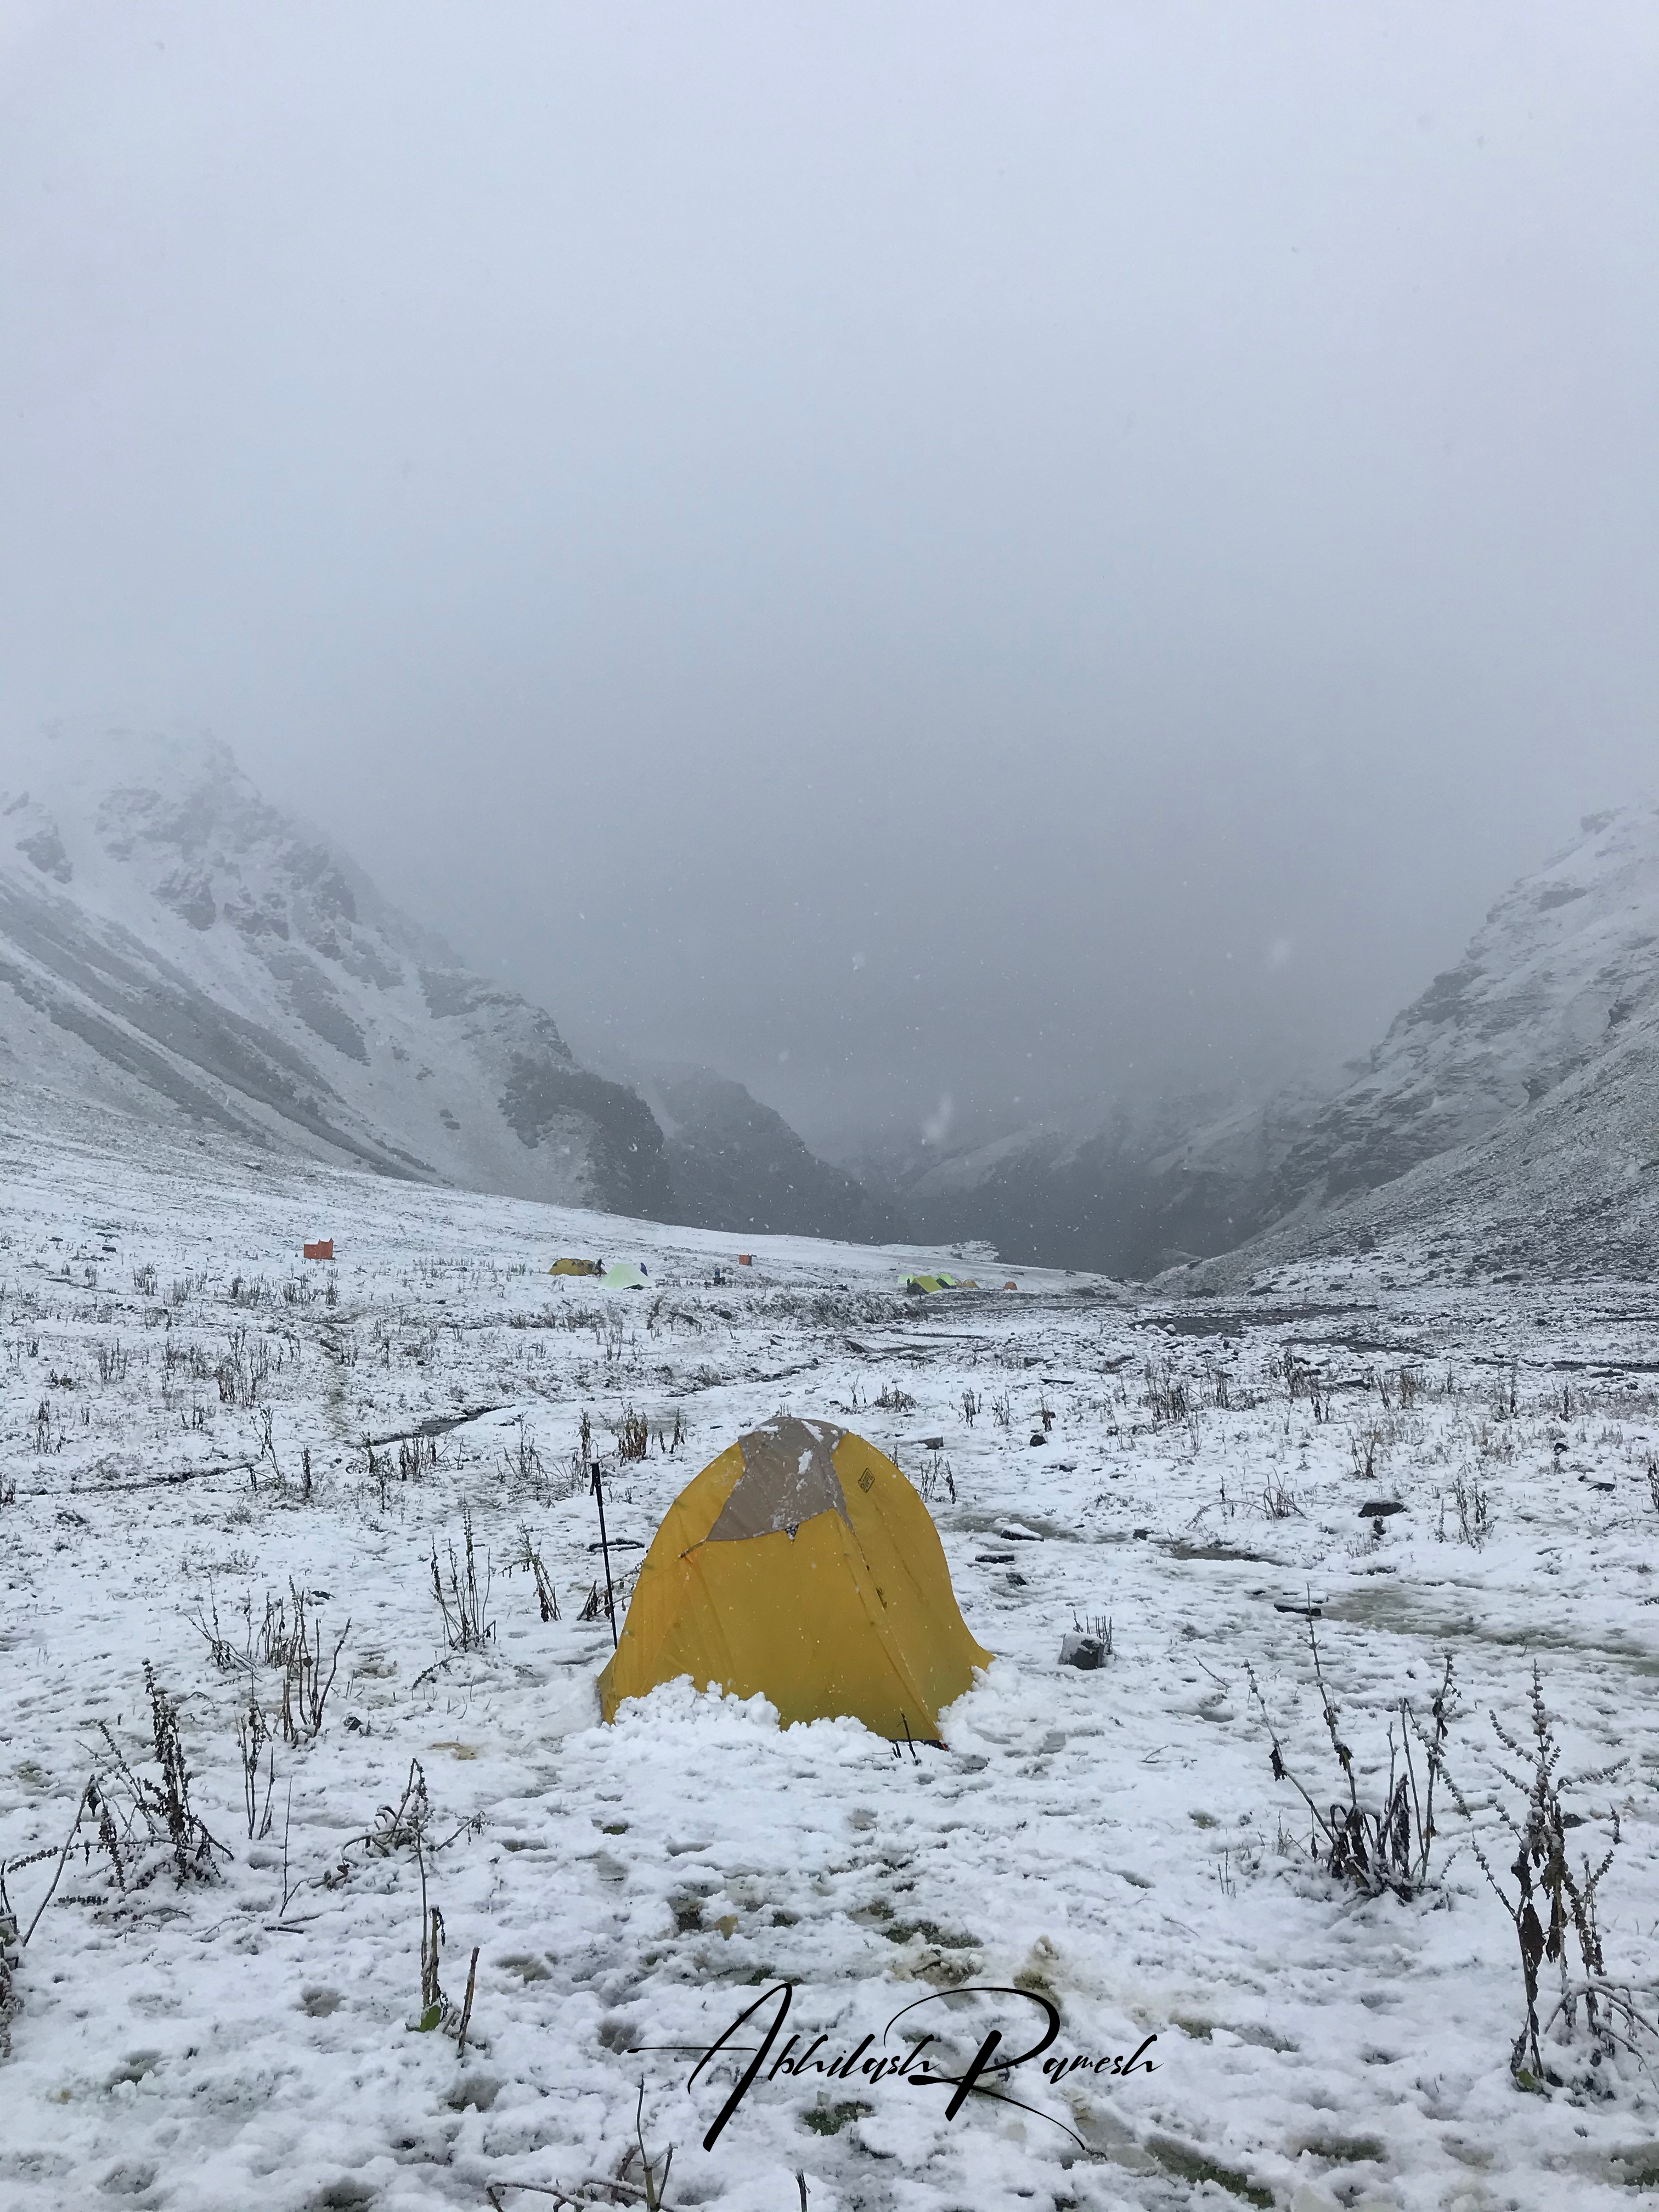 The snowfall across the valley